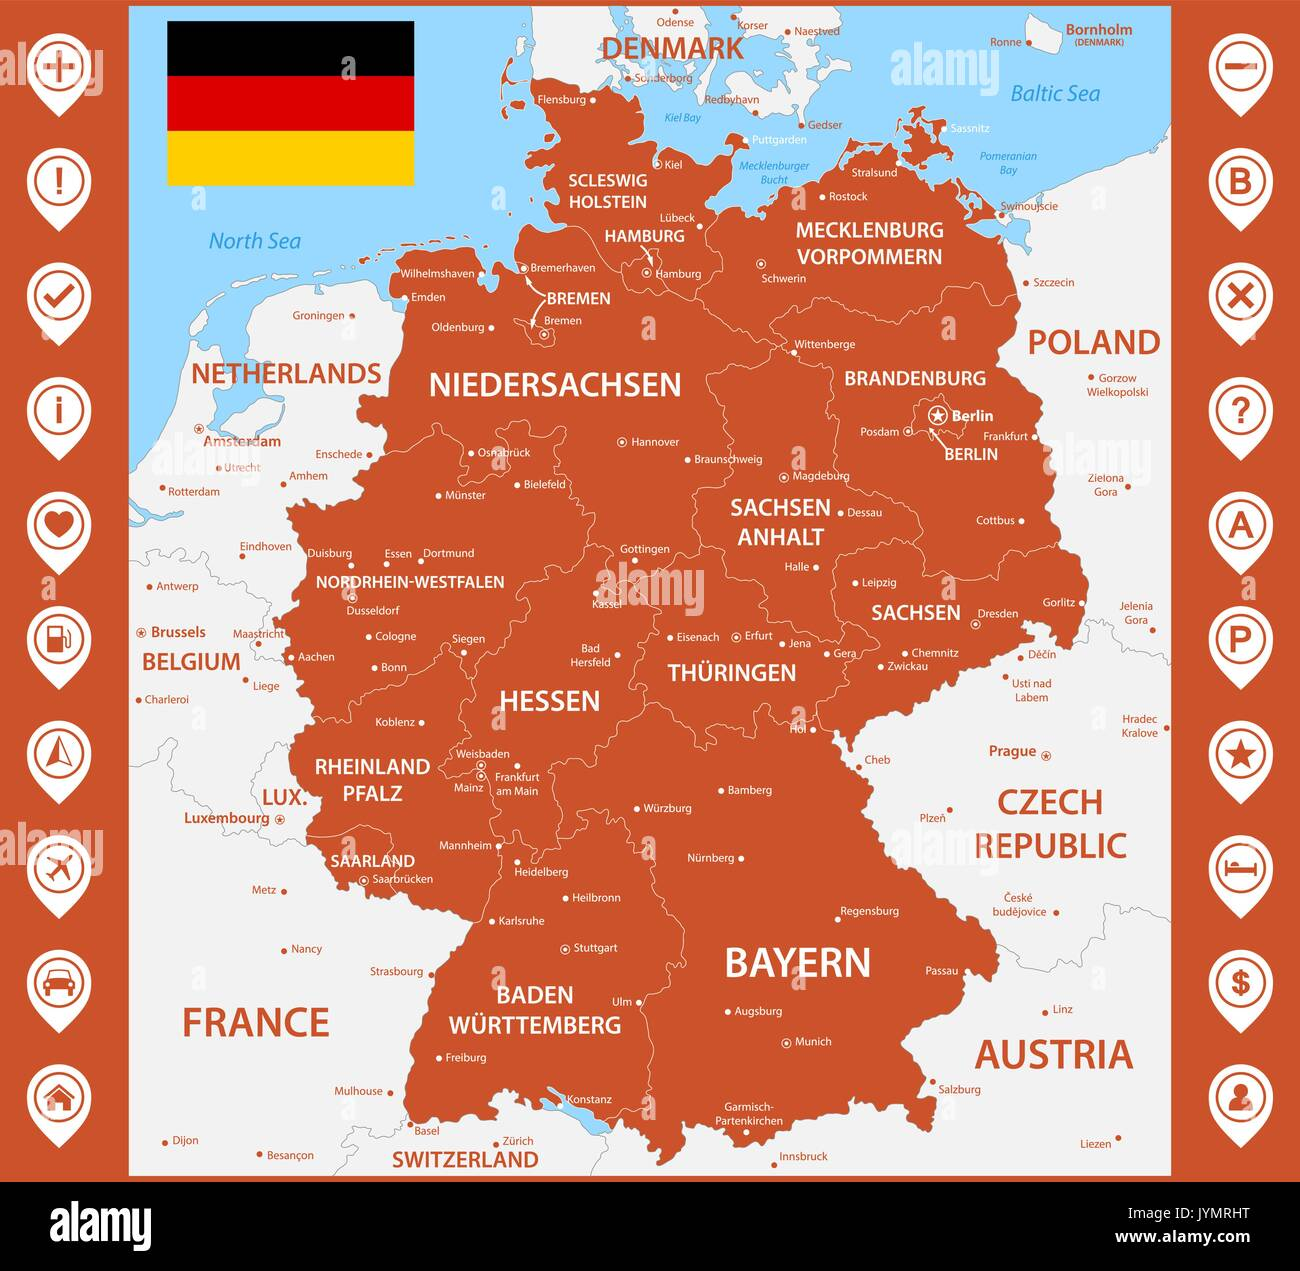 Germany Map City Pins Stock Photos & Germany Map City Pins ... on germany map printable, germany cities and towns, germany map towns, germany rivers, germany austria switzerland map, germany map 1800, germany map 1939, germany map outline, saxony germany map cities, germany location map in europe, germany mountain ranges, germany map scale, germany on world map, austria map cities, germany people, europe map cities, germany airports, germany geography map, germany vs brazil google doodle, map of germany showing cities,